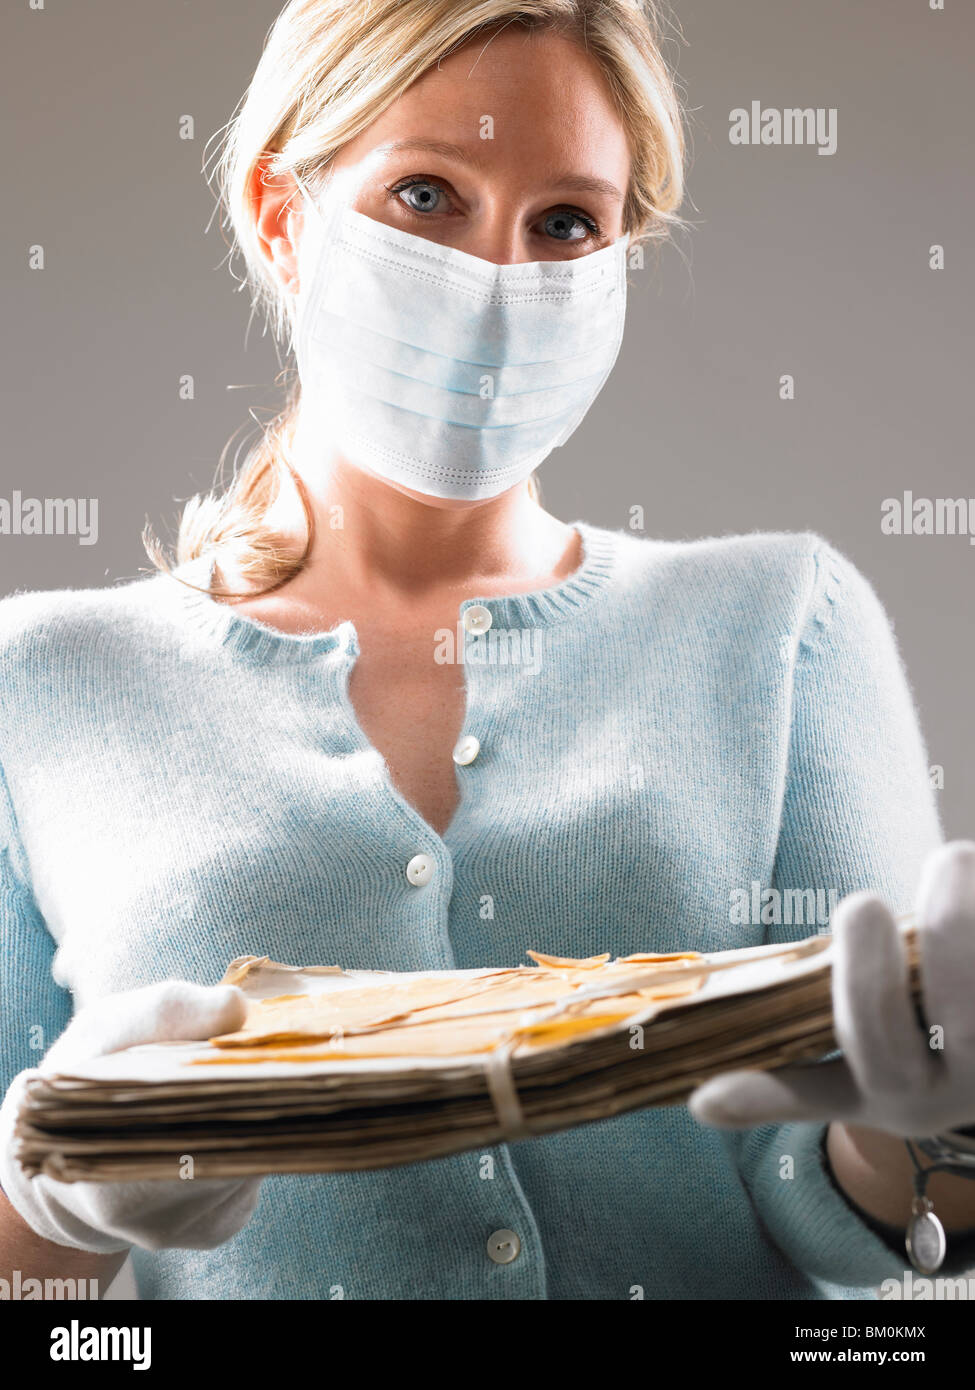 Woman with mask, holding precious files - Stock Image